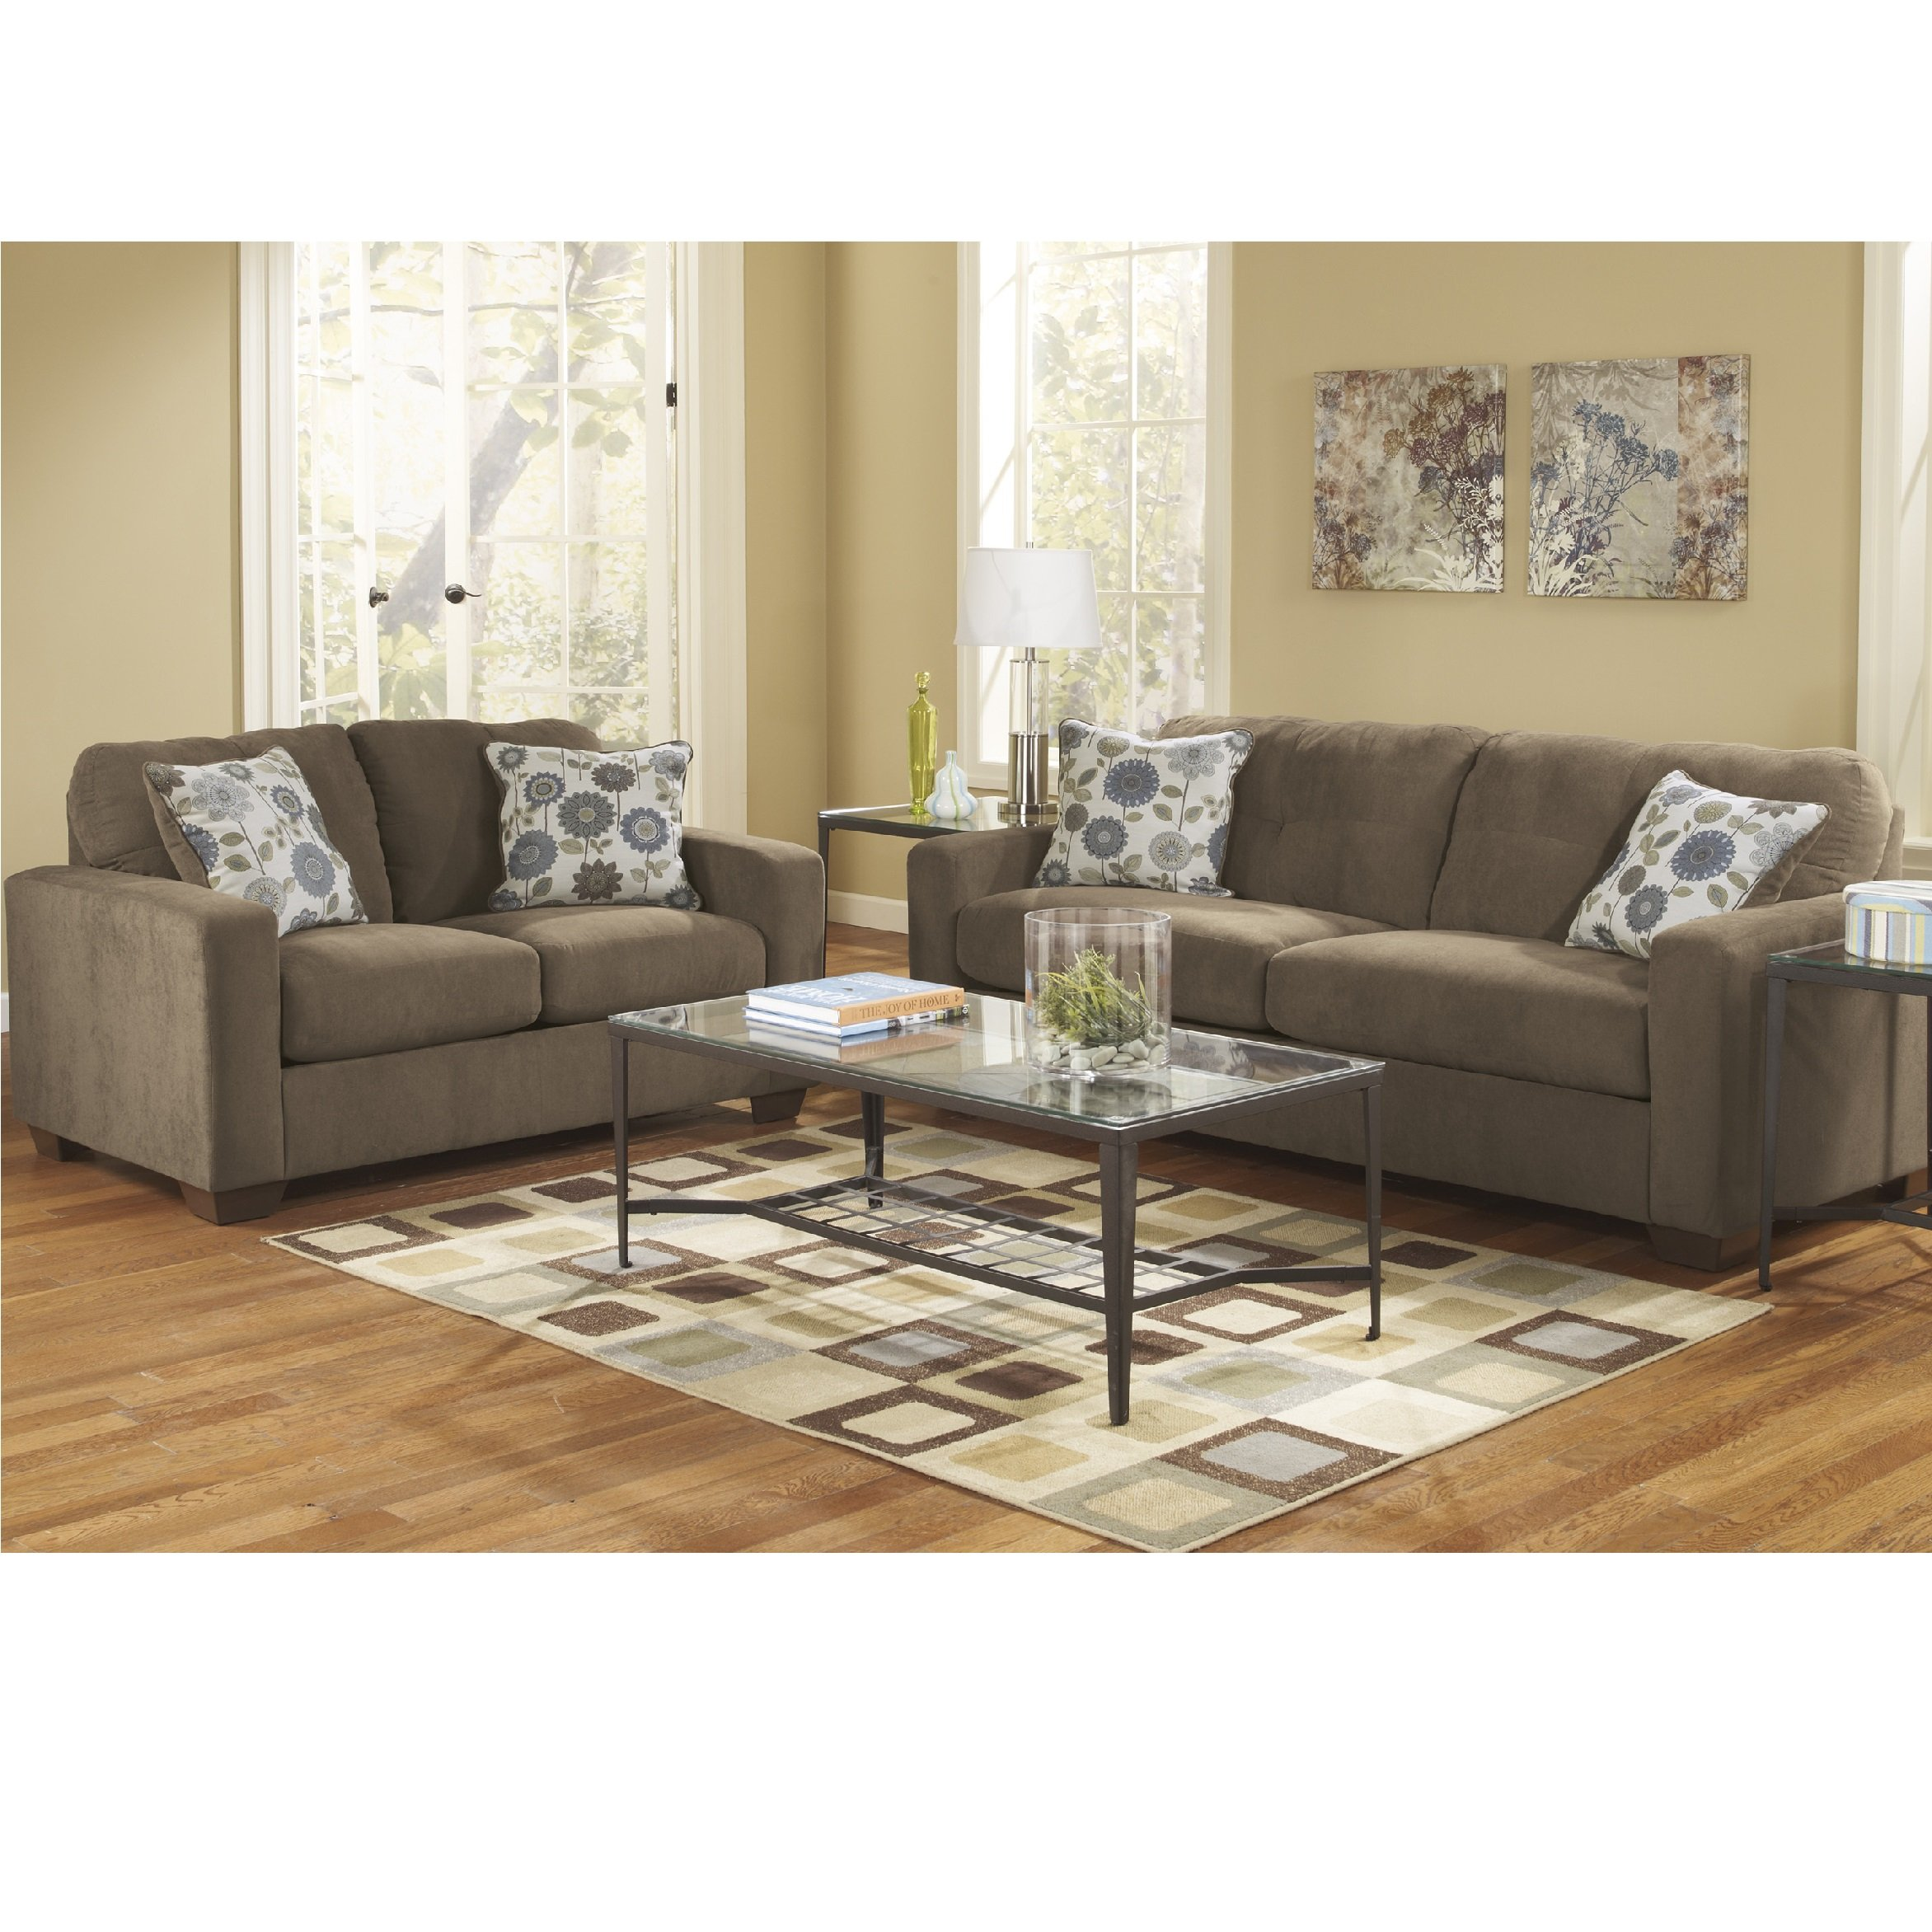 New Image Furniture Leasing Furniture Packages